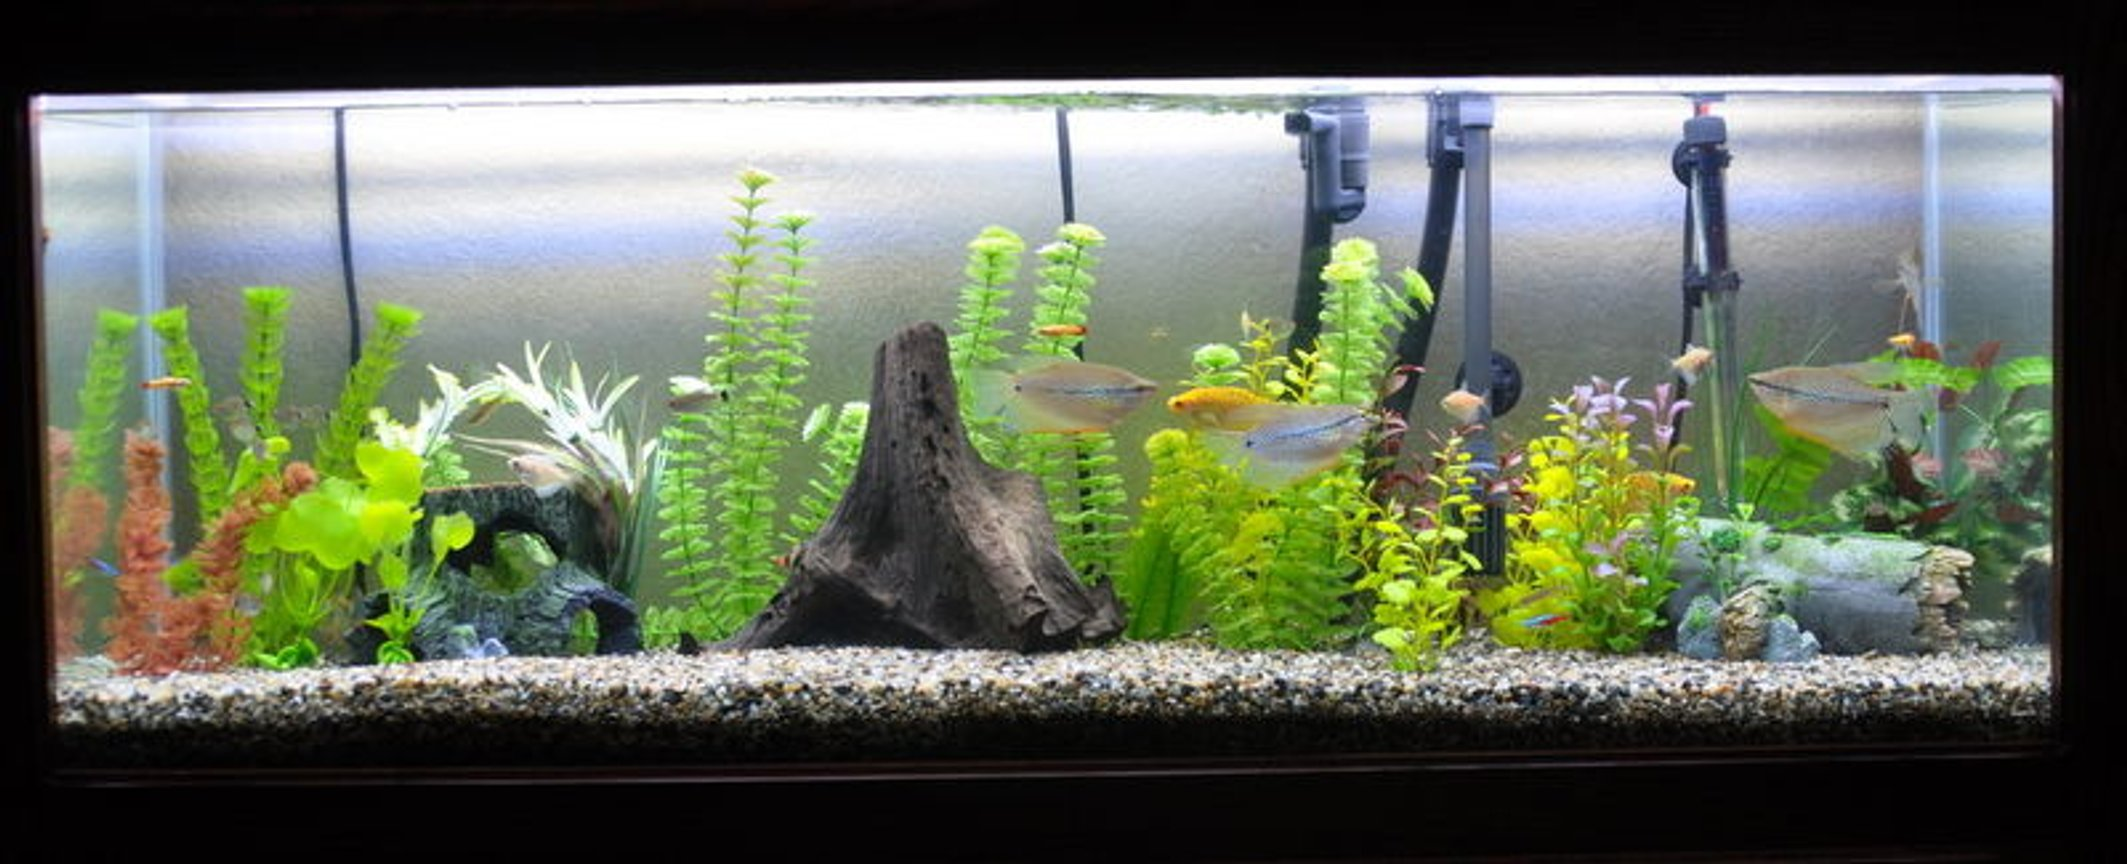 55 gallons freshwater fish tank (mostly fish and non-living decorations) - 55 gallon freshwater aquarium.